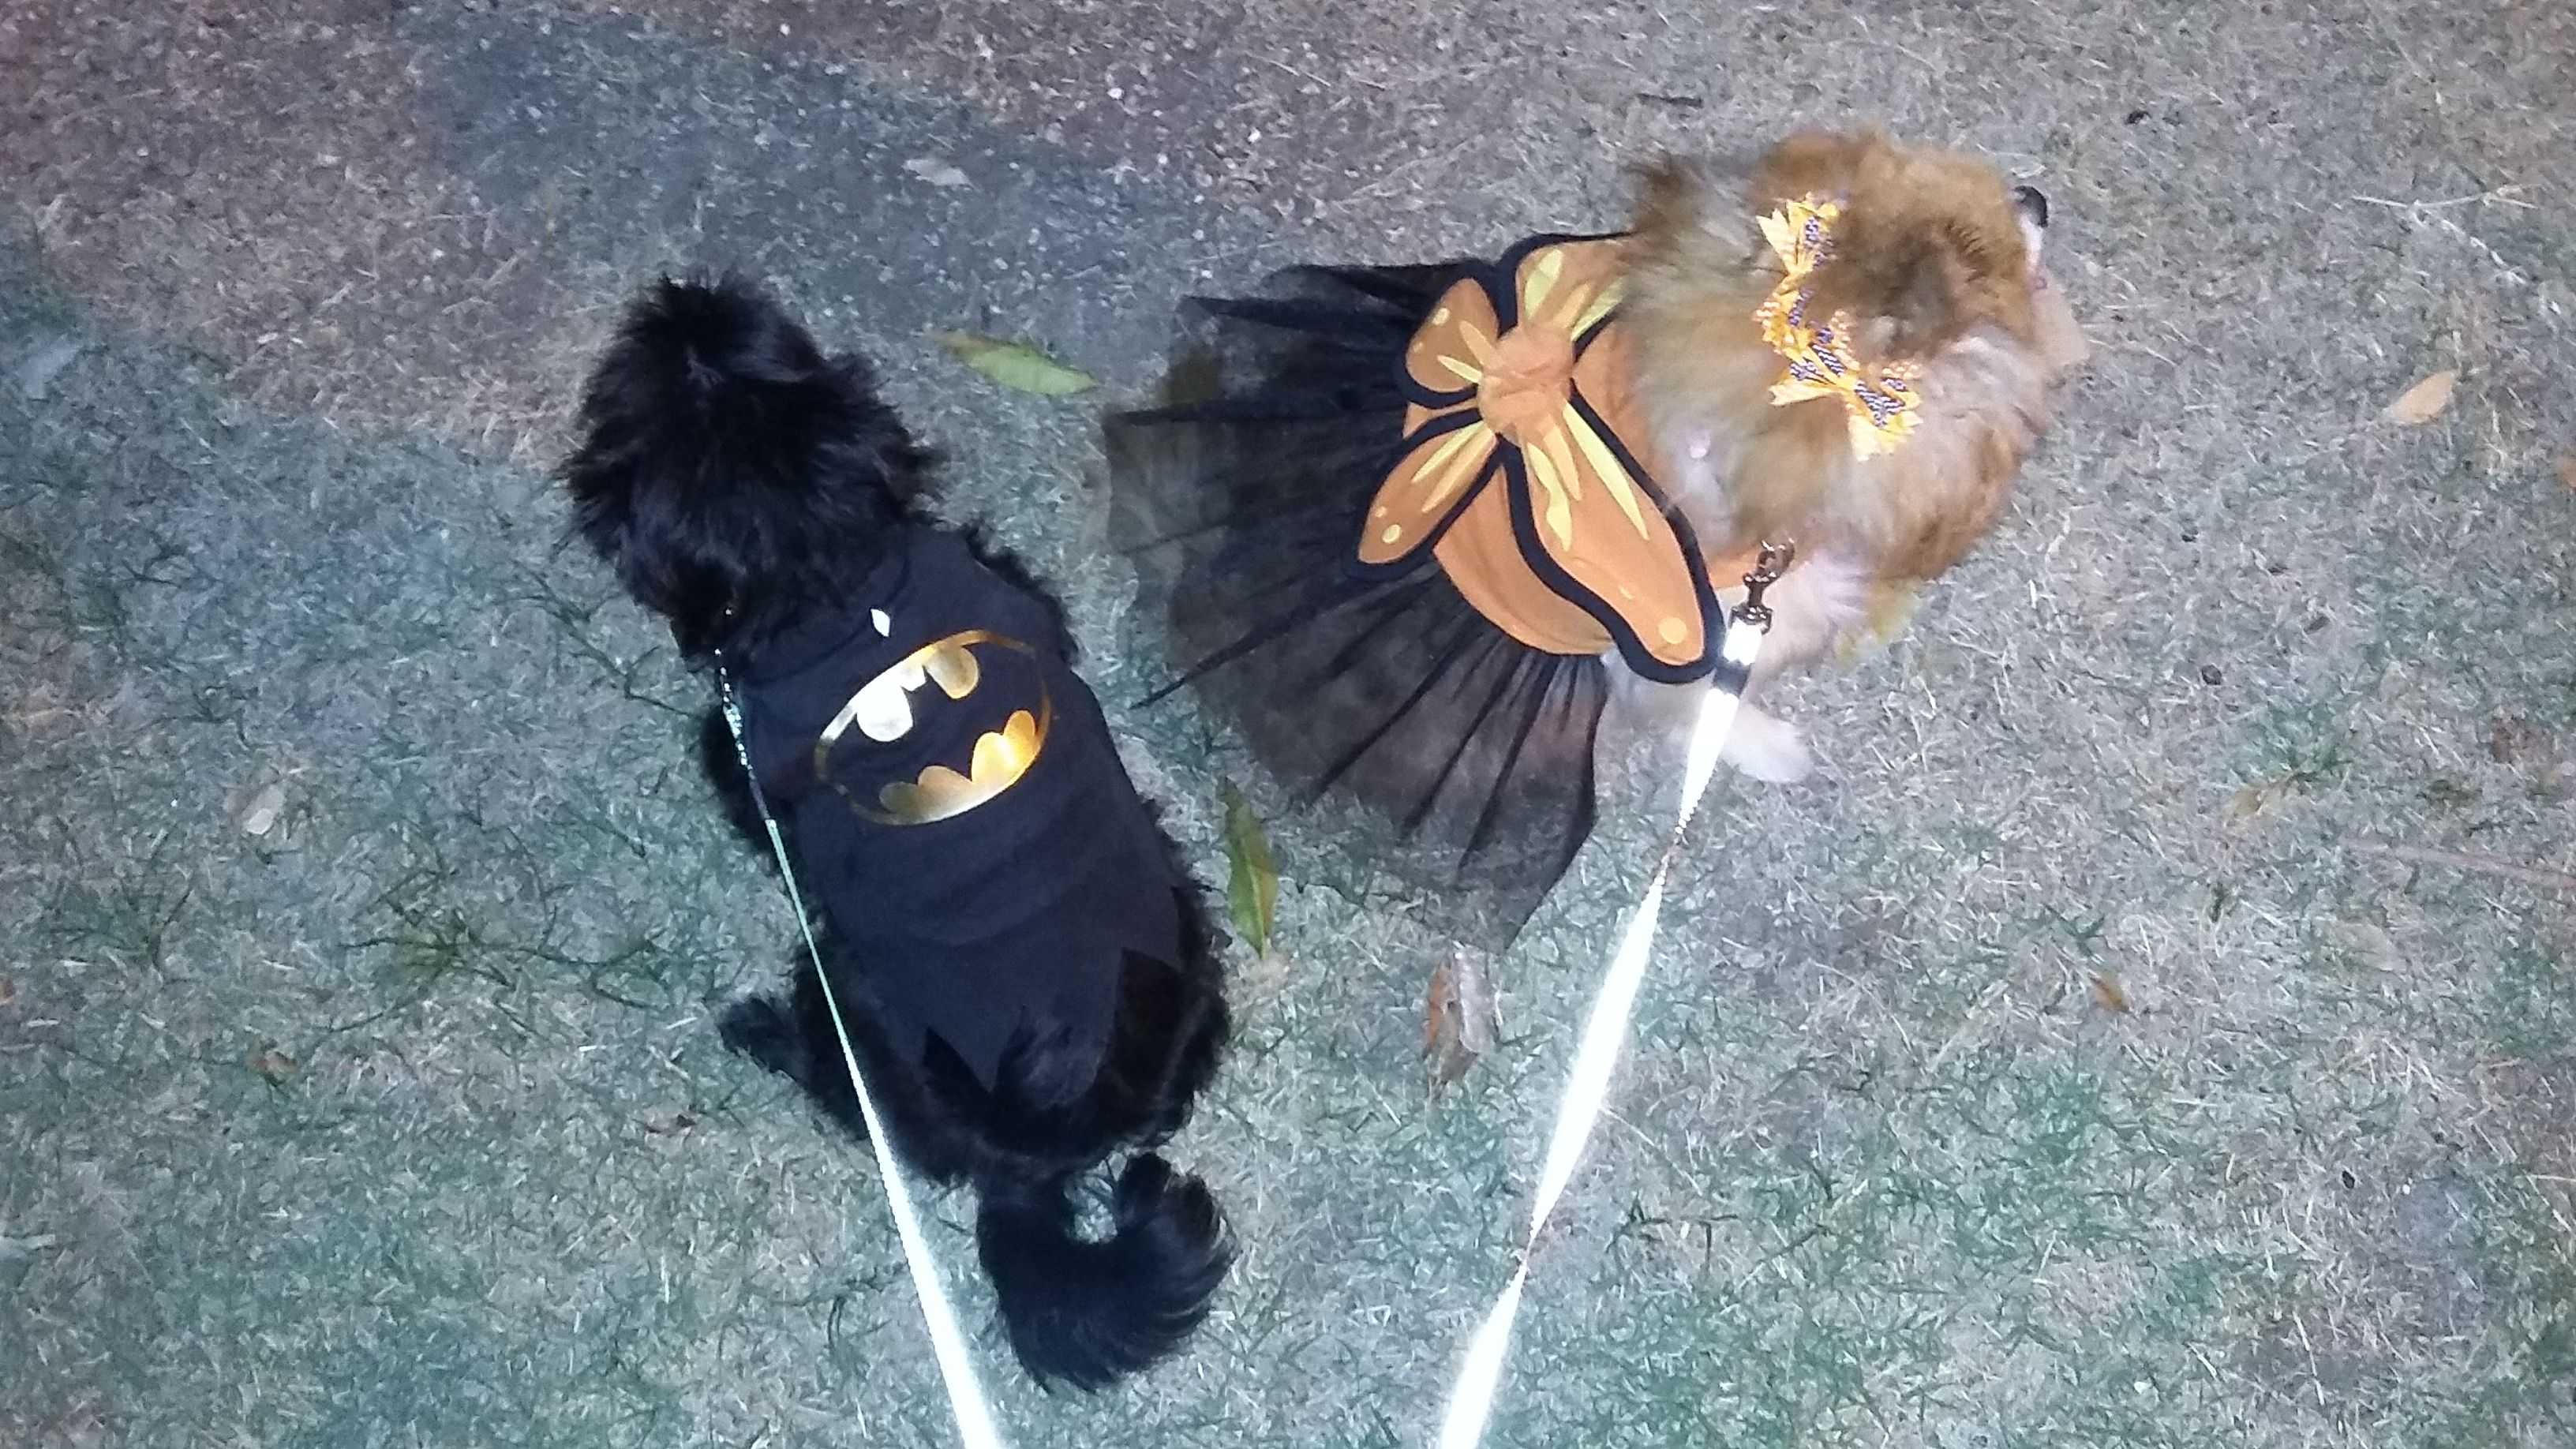 Knight and Diva, Batman, the dark Knight Rising  and Orange Butterfy Princess